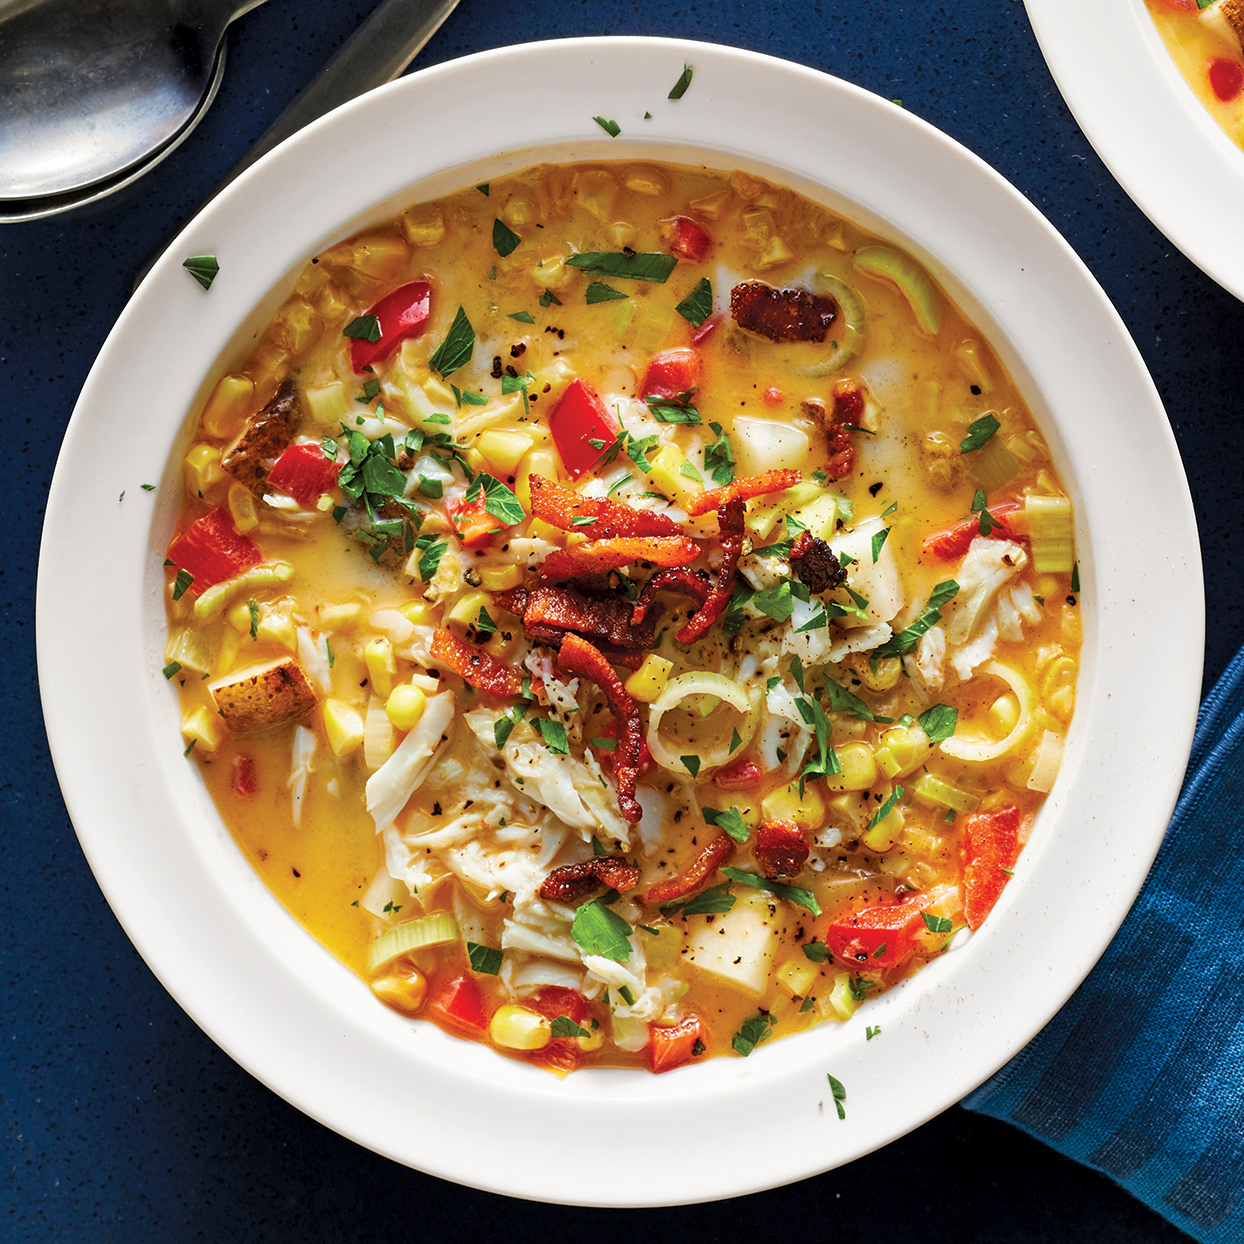 Sweet corn and tender lump crabmeat go together wonderfully to make this rich, hearty chowder. This colorful, quick and easy Instant Pot soup makes a great starter for a summertime meal. Source: 400 Calorie Recipes